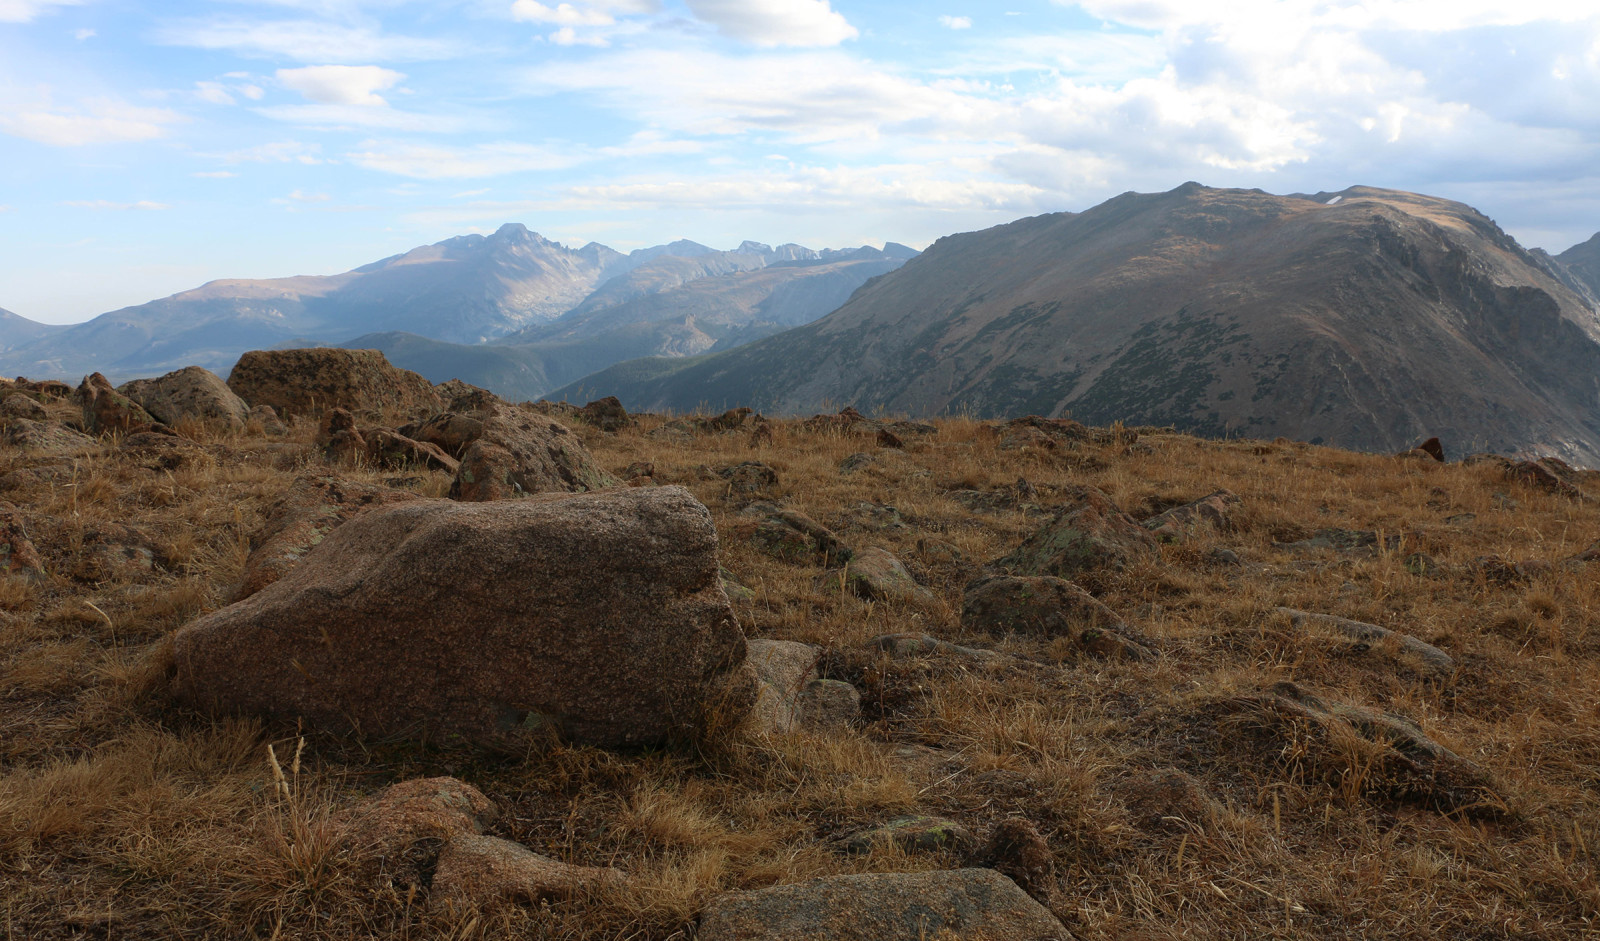 Alpine tundra with a view of Long's Peak. (Ethan Freese)